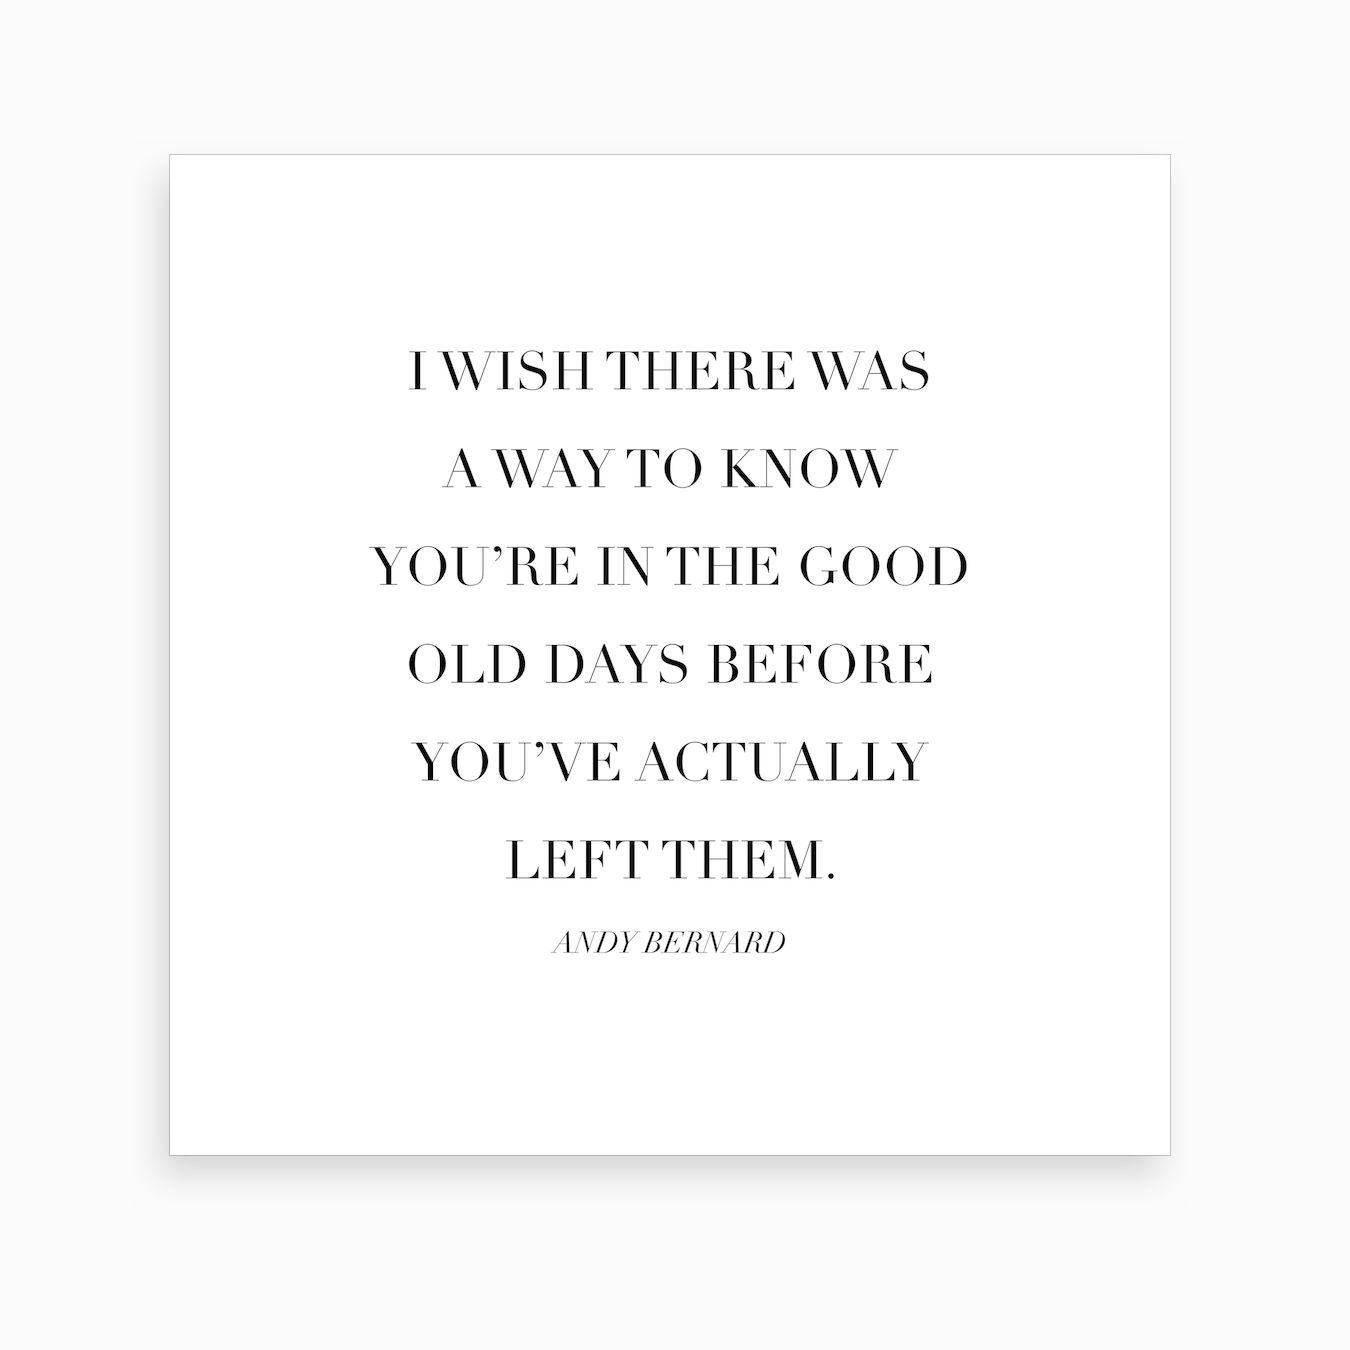 The Good Old Days Andy Bernard Quote Art Print in 2020